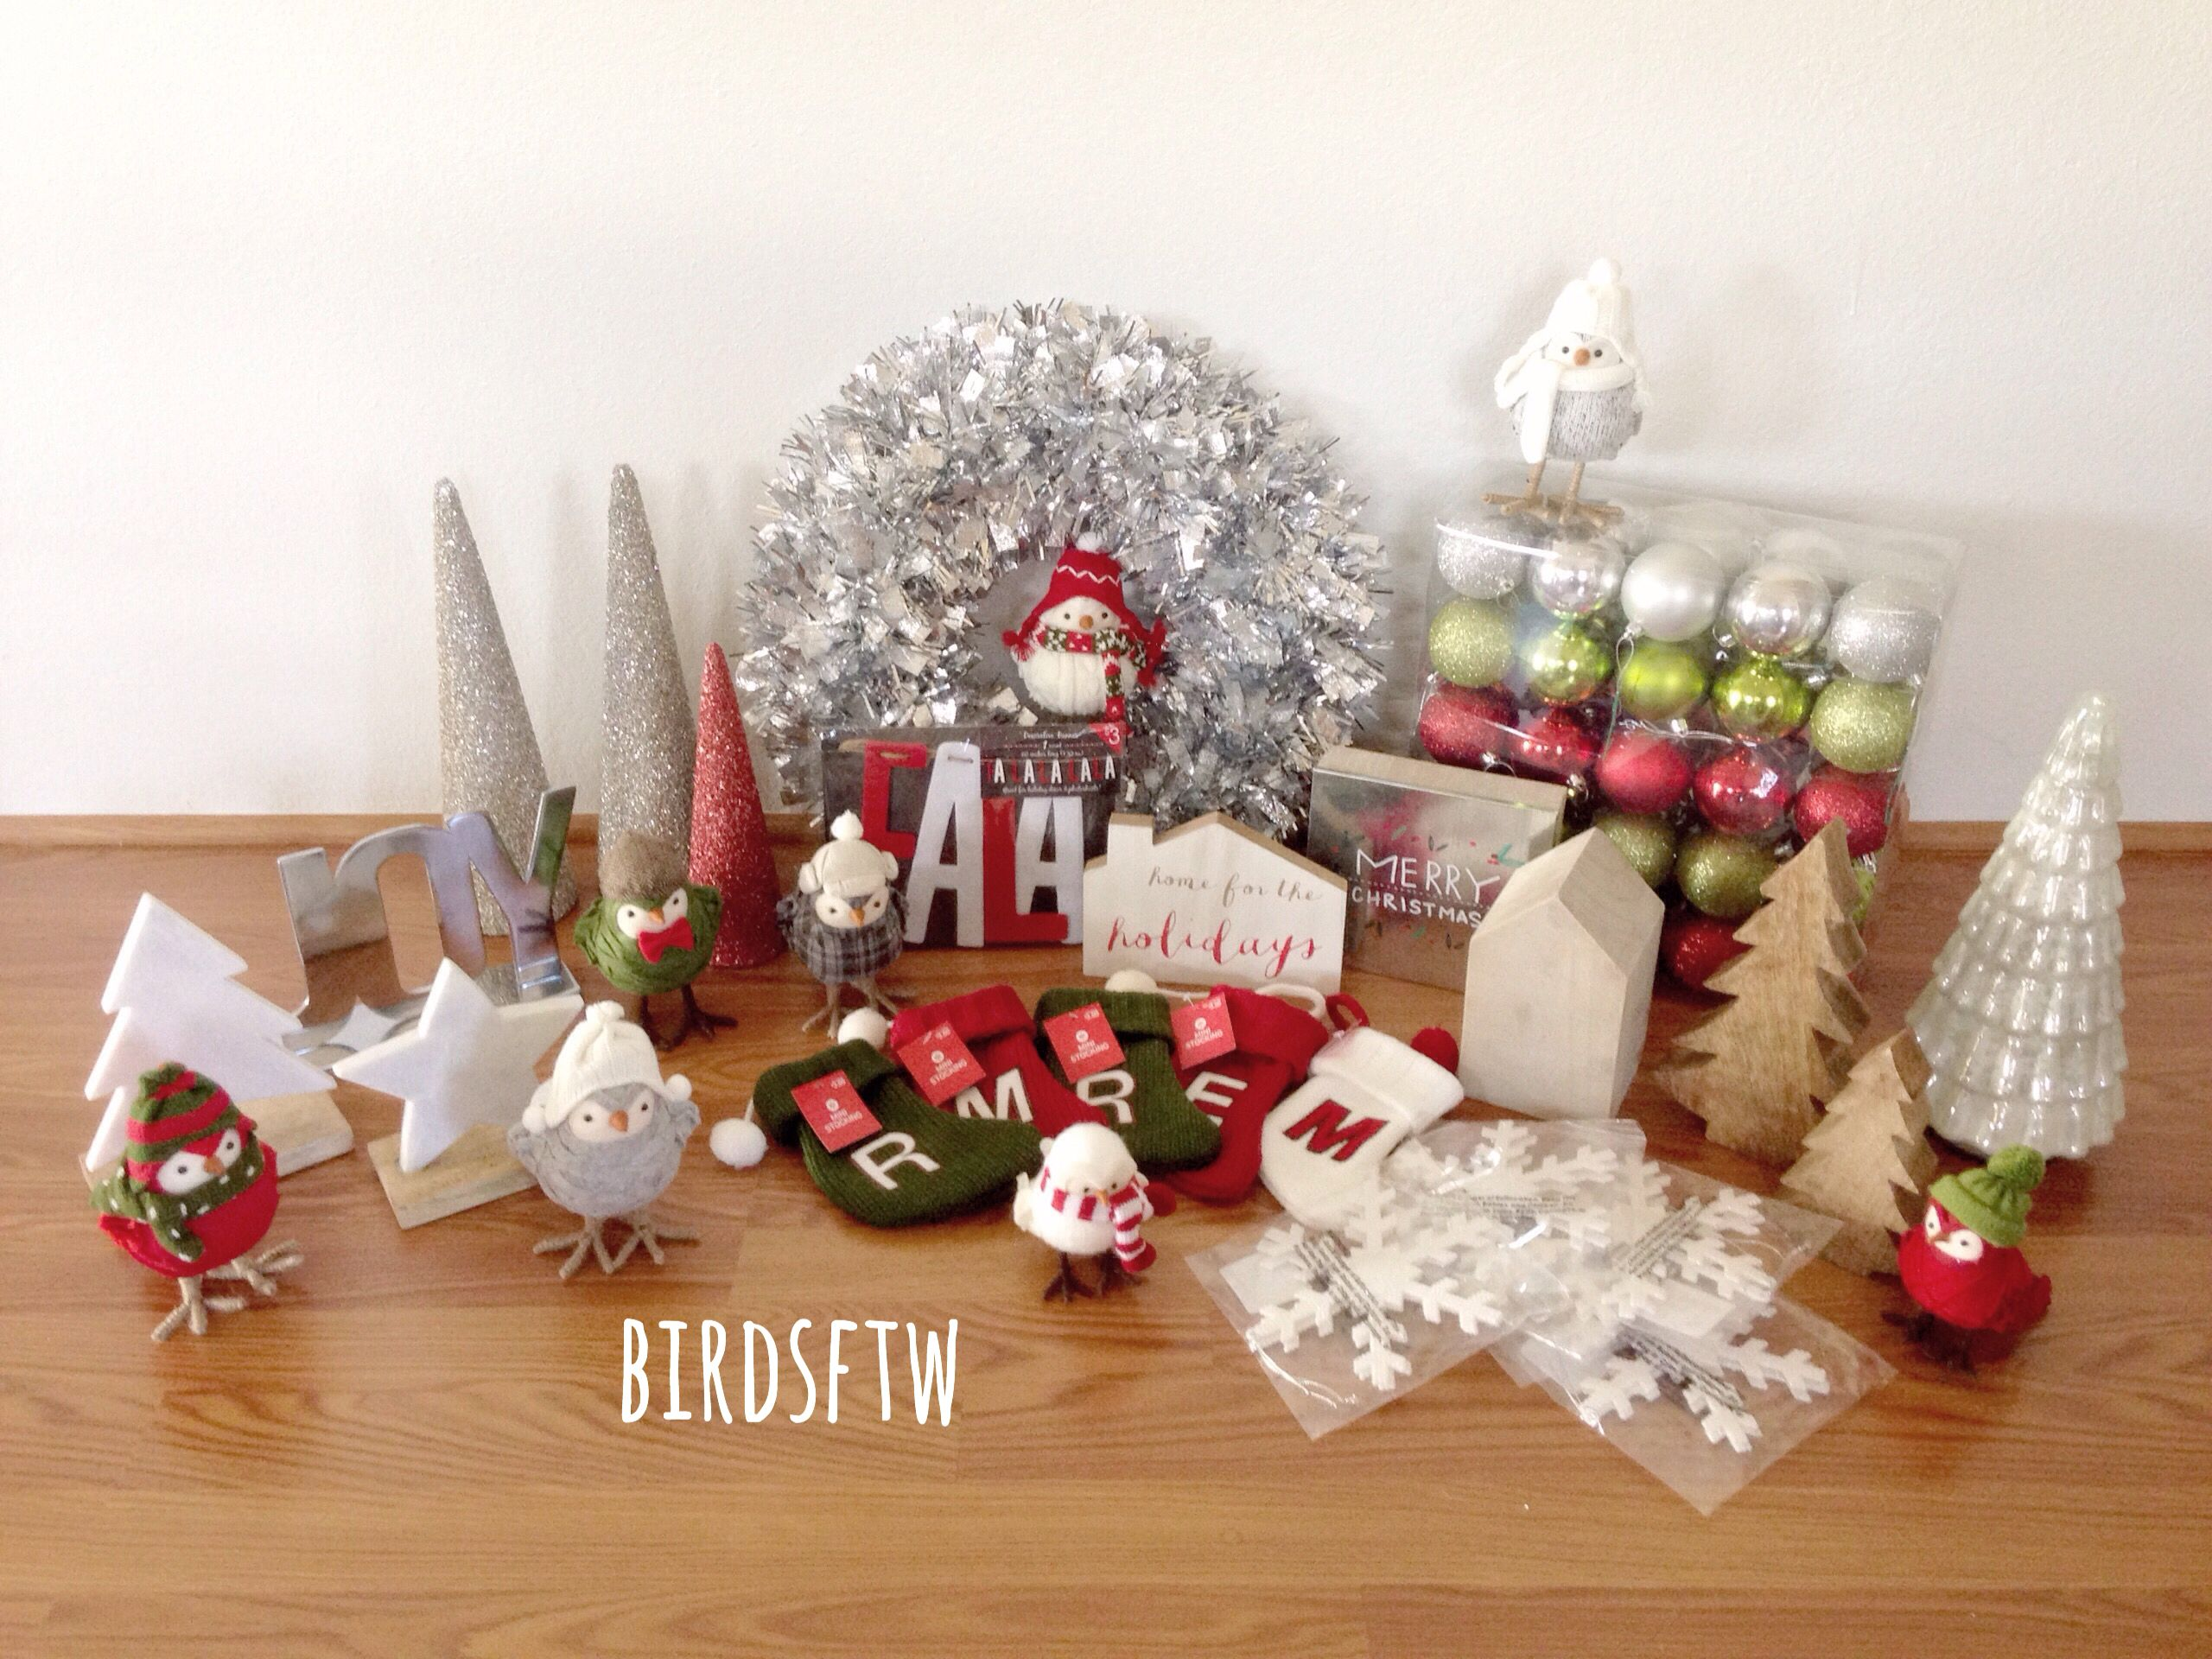 Explore Tj Maxx, Christmas Decorations, And More!